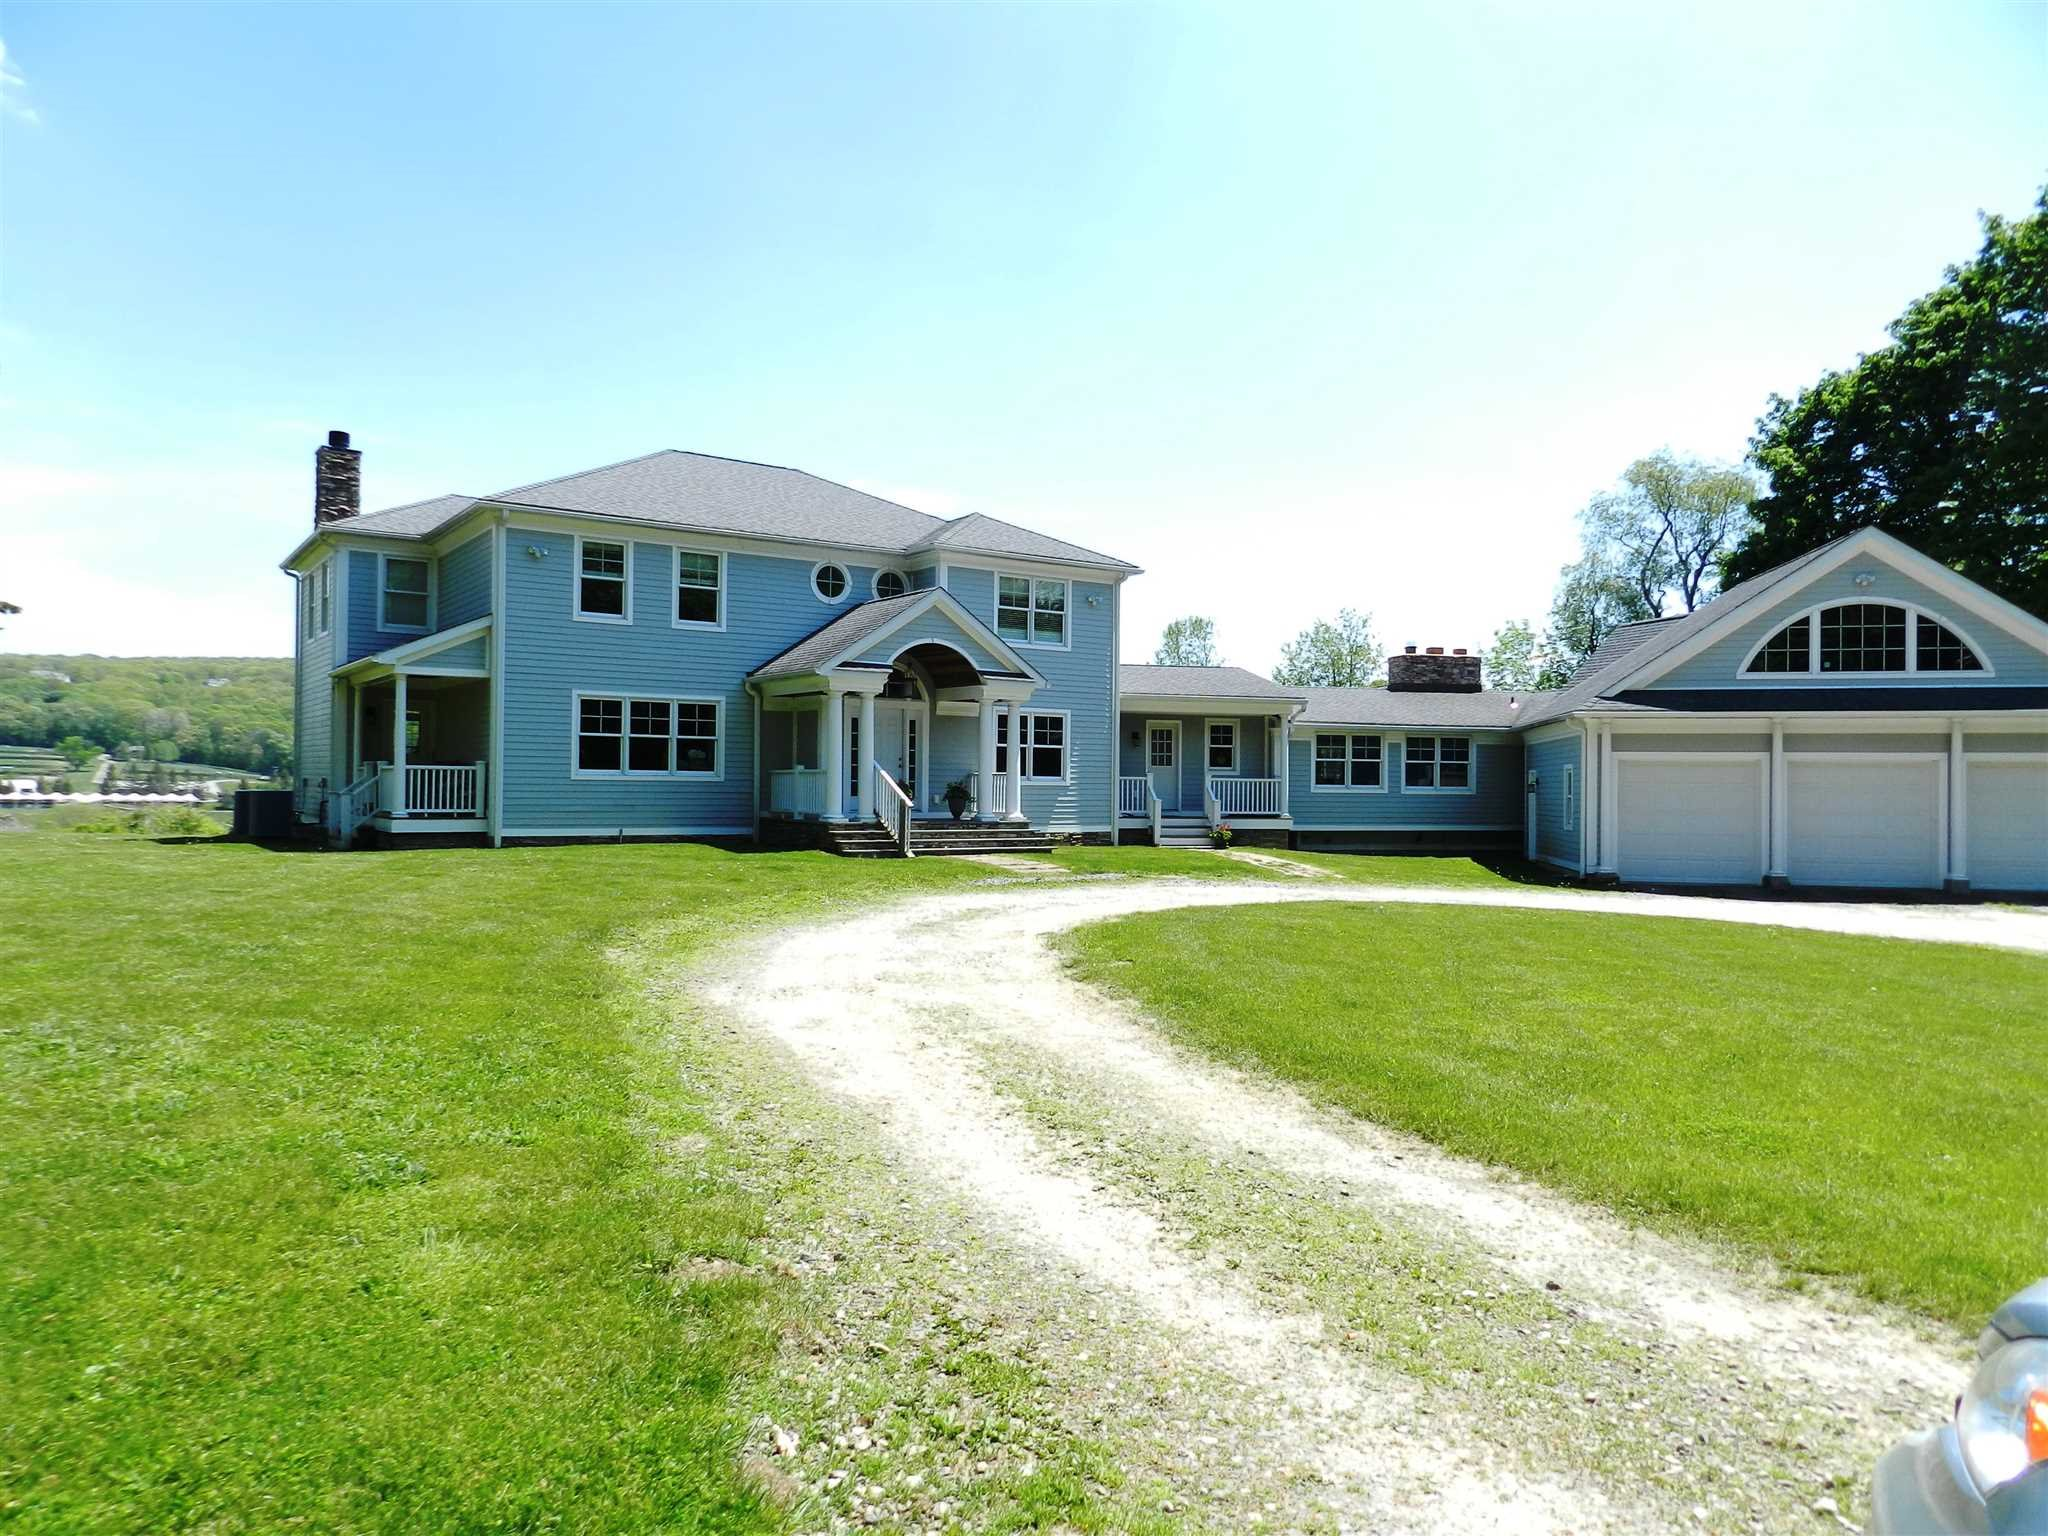 Single Family Home for Sale at 382 OLD QUAKER HILL Road 382 OLD QUAKER HILL Road Pawling, New York 12564 United States